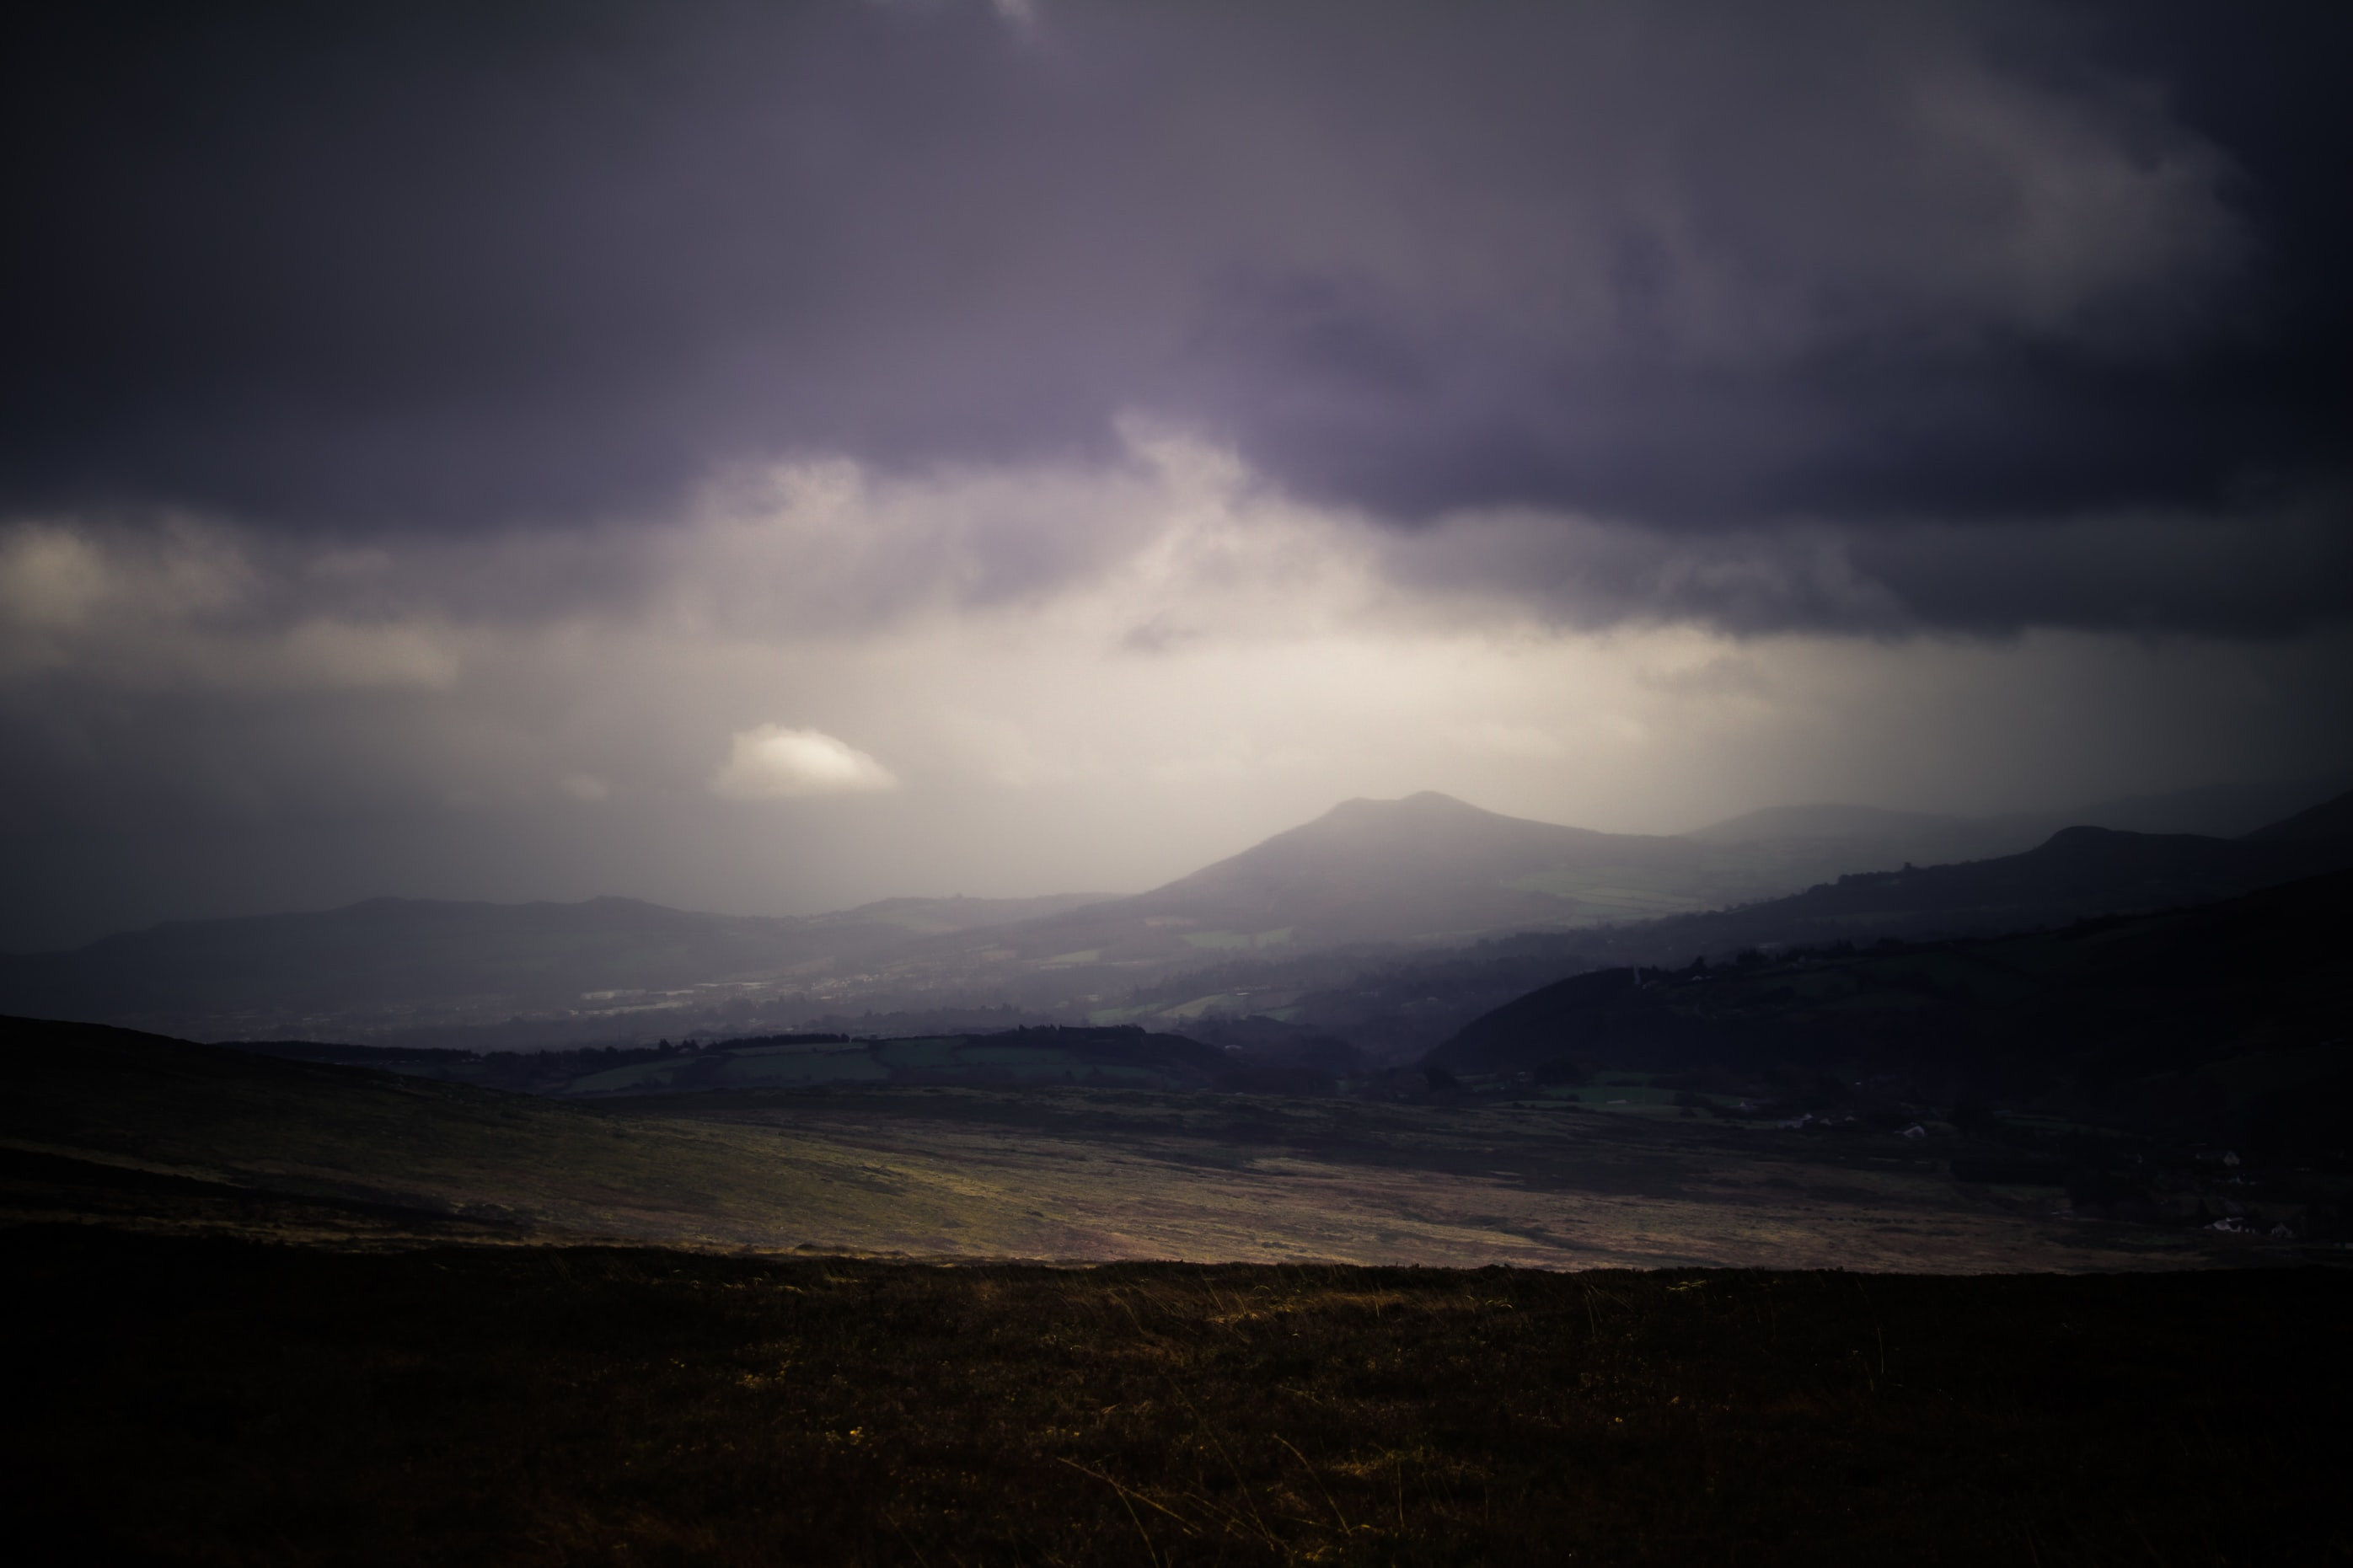 A dim shot of plains stretching to the low mountains on the horizon under gray clouds